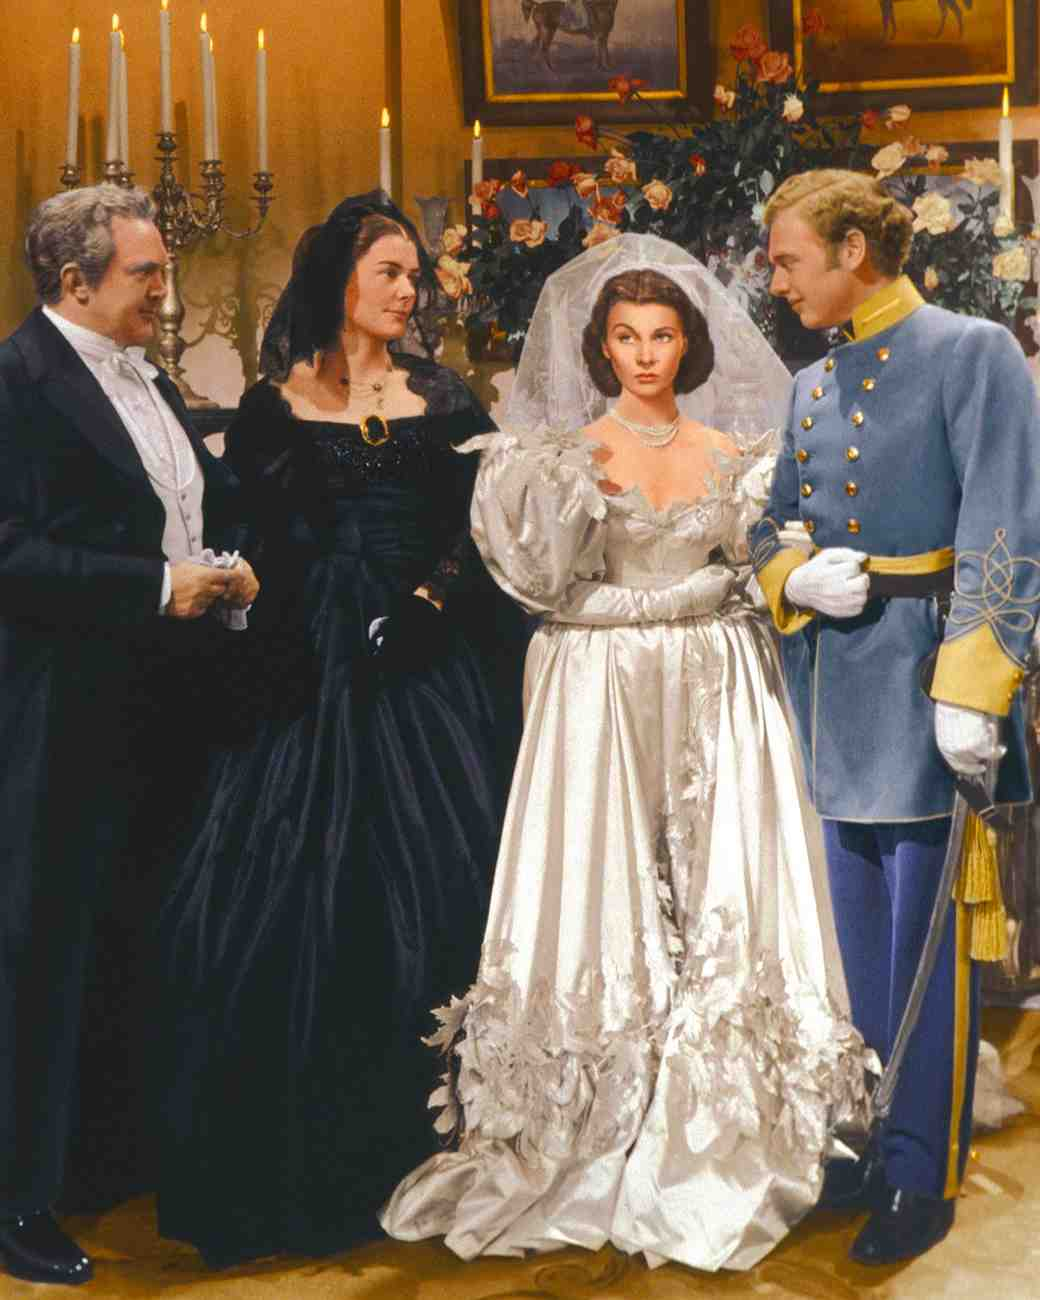 movie-wedding-dresses-gone-with-the-wind-vivien-leigh-0316.jpg